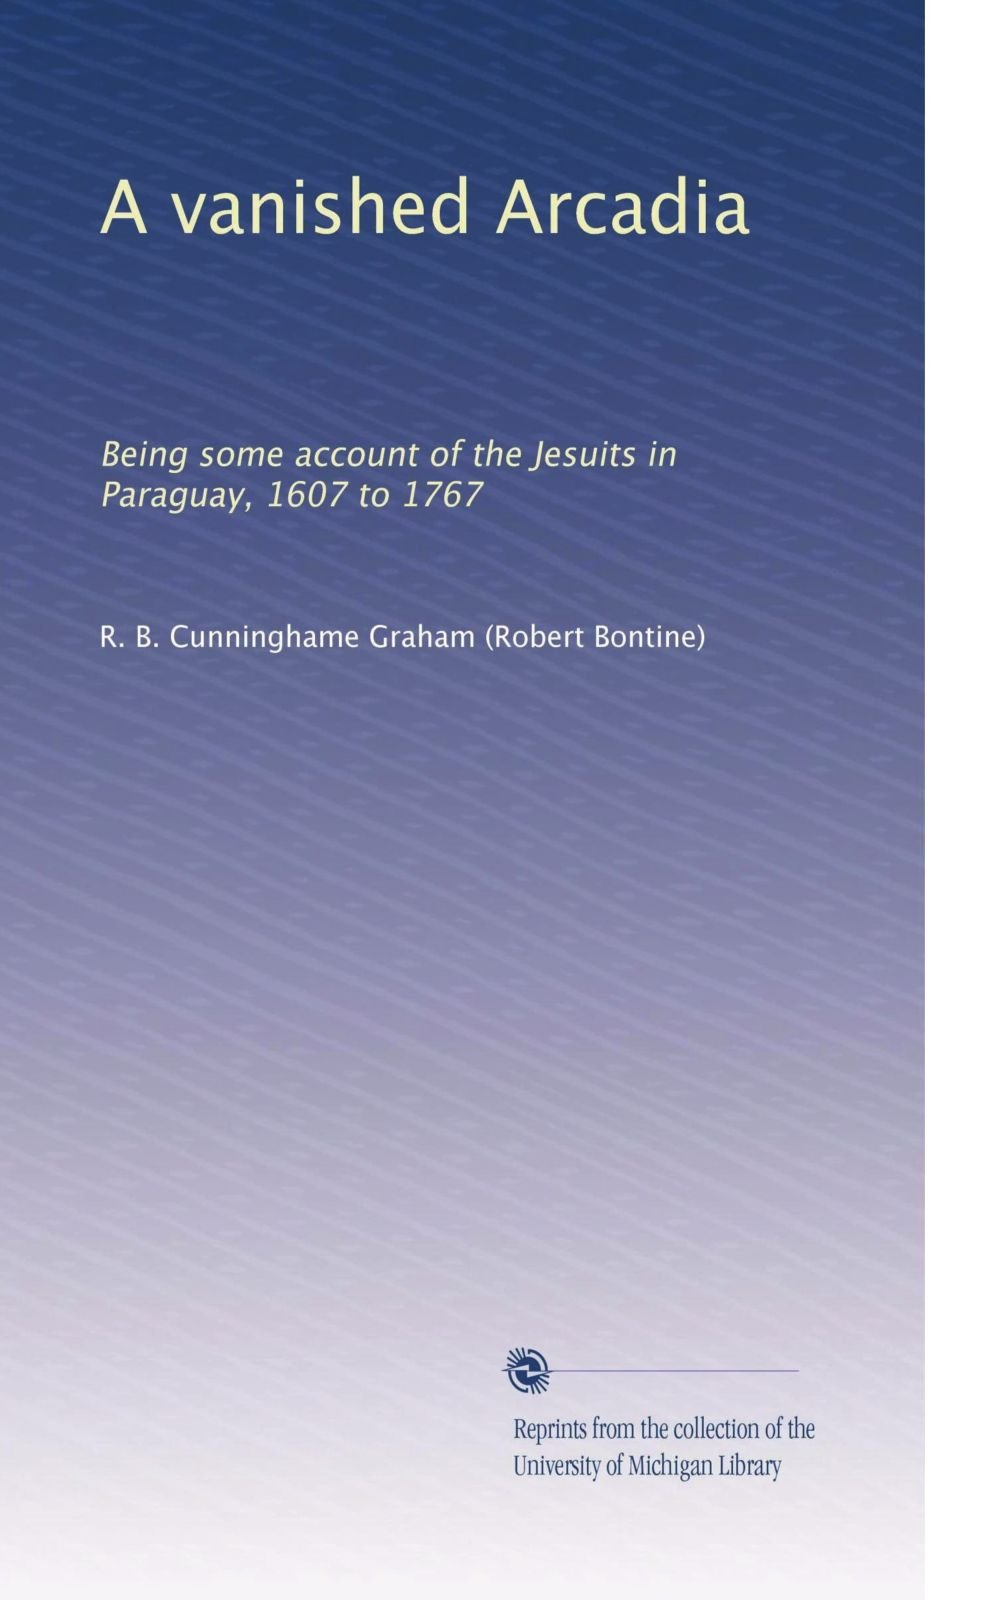 A vanished Arcadia: Being some account of the Jesuits in Paraguay, 1607 to 1767